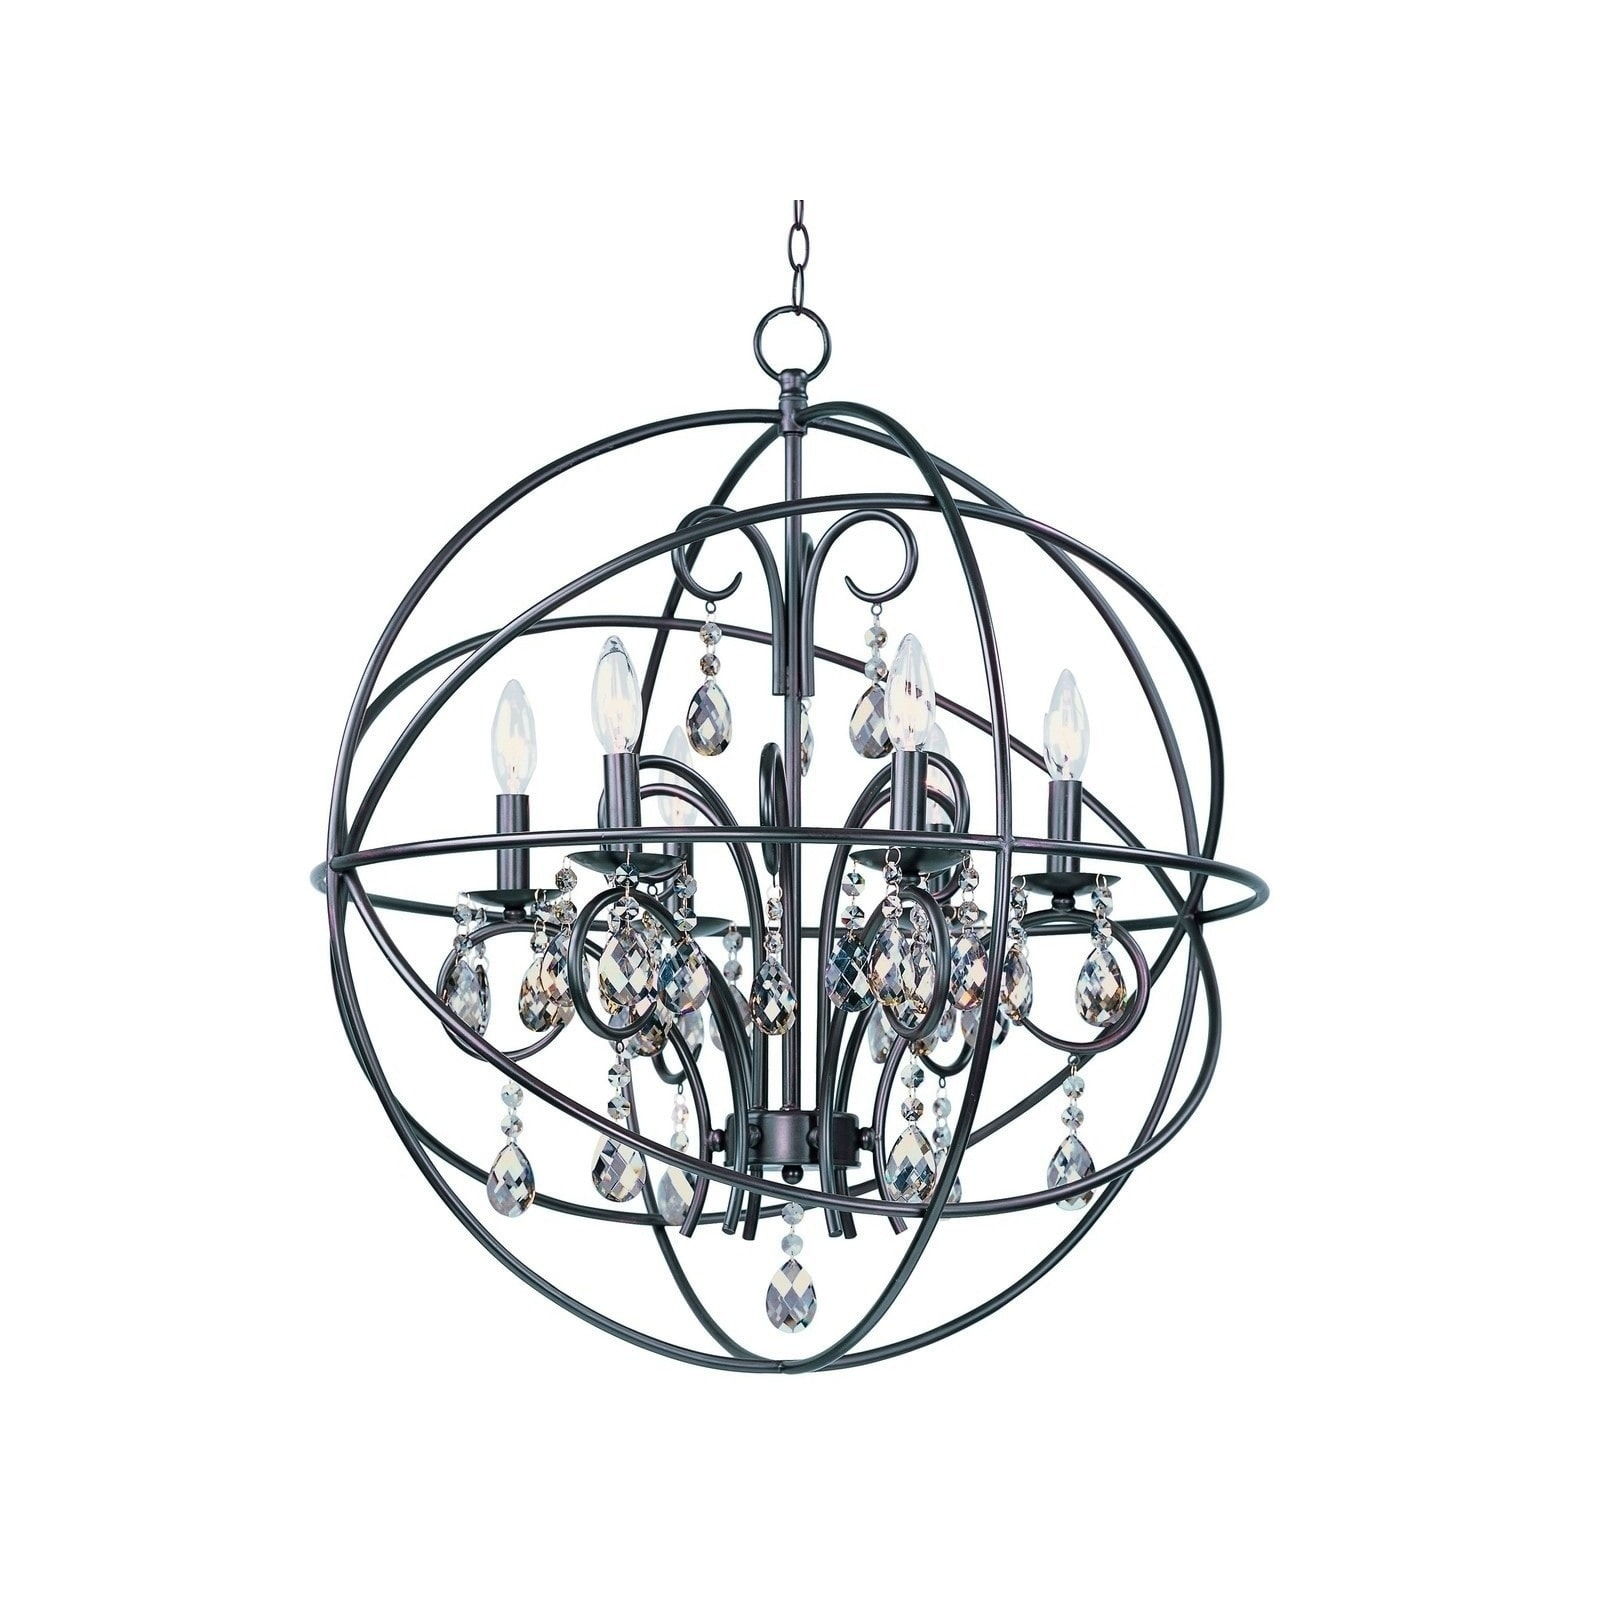 Maxim 6 light Bronze Orbit Single Tier Chandelier Free Shipping